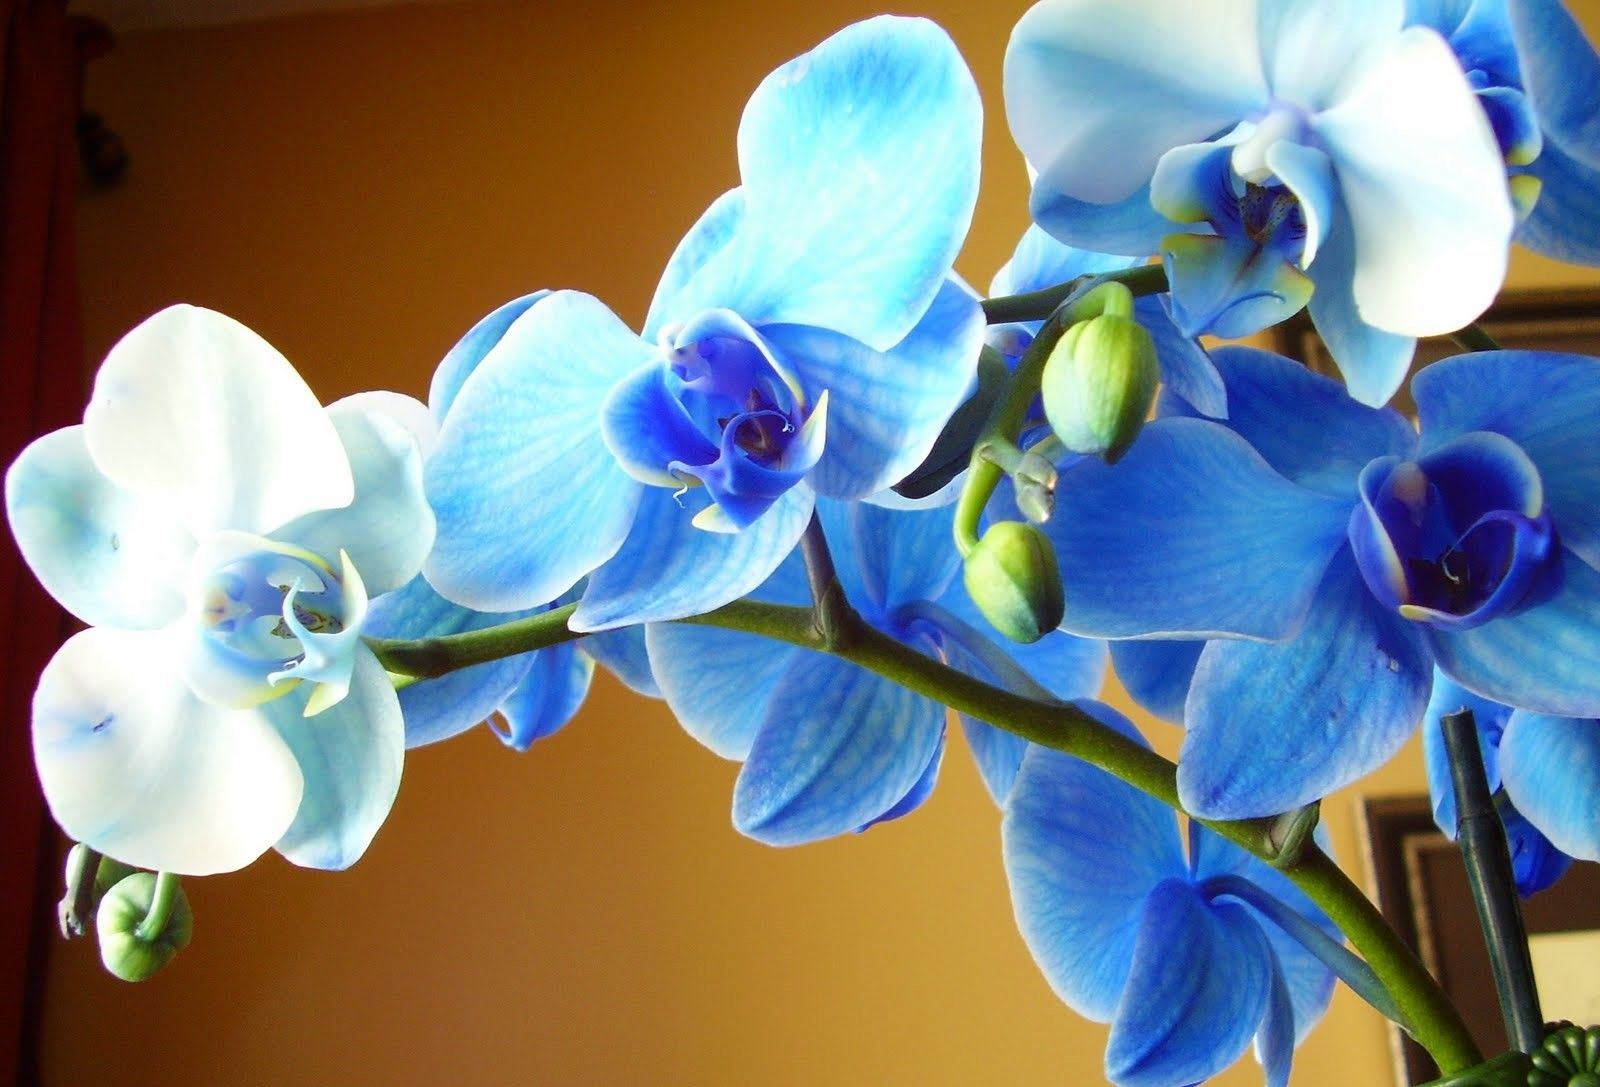 Wonderful Blue Orchid Flower In The Sunlight Beautiful Flowers And Plants Wallpapers Hd Wallpaper Download Fo Blue Orchid Flower Blue Orchids Orchid Flower